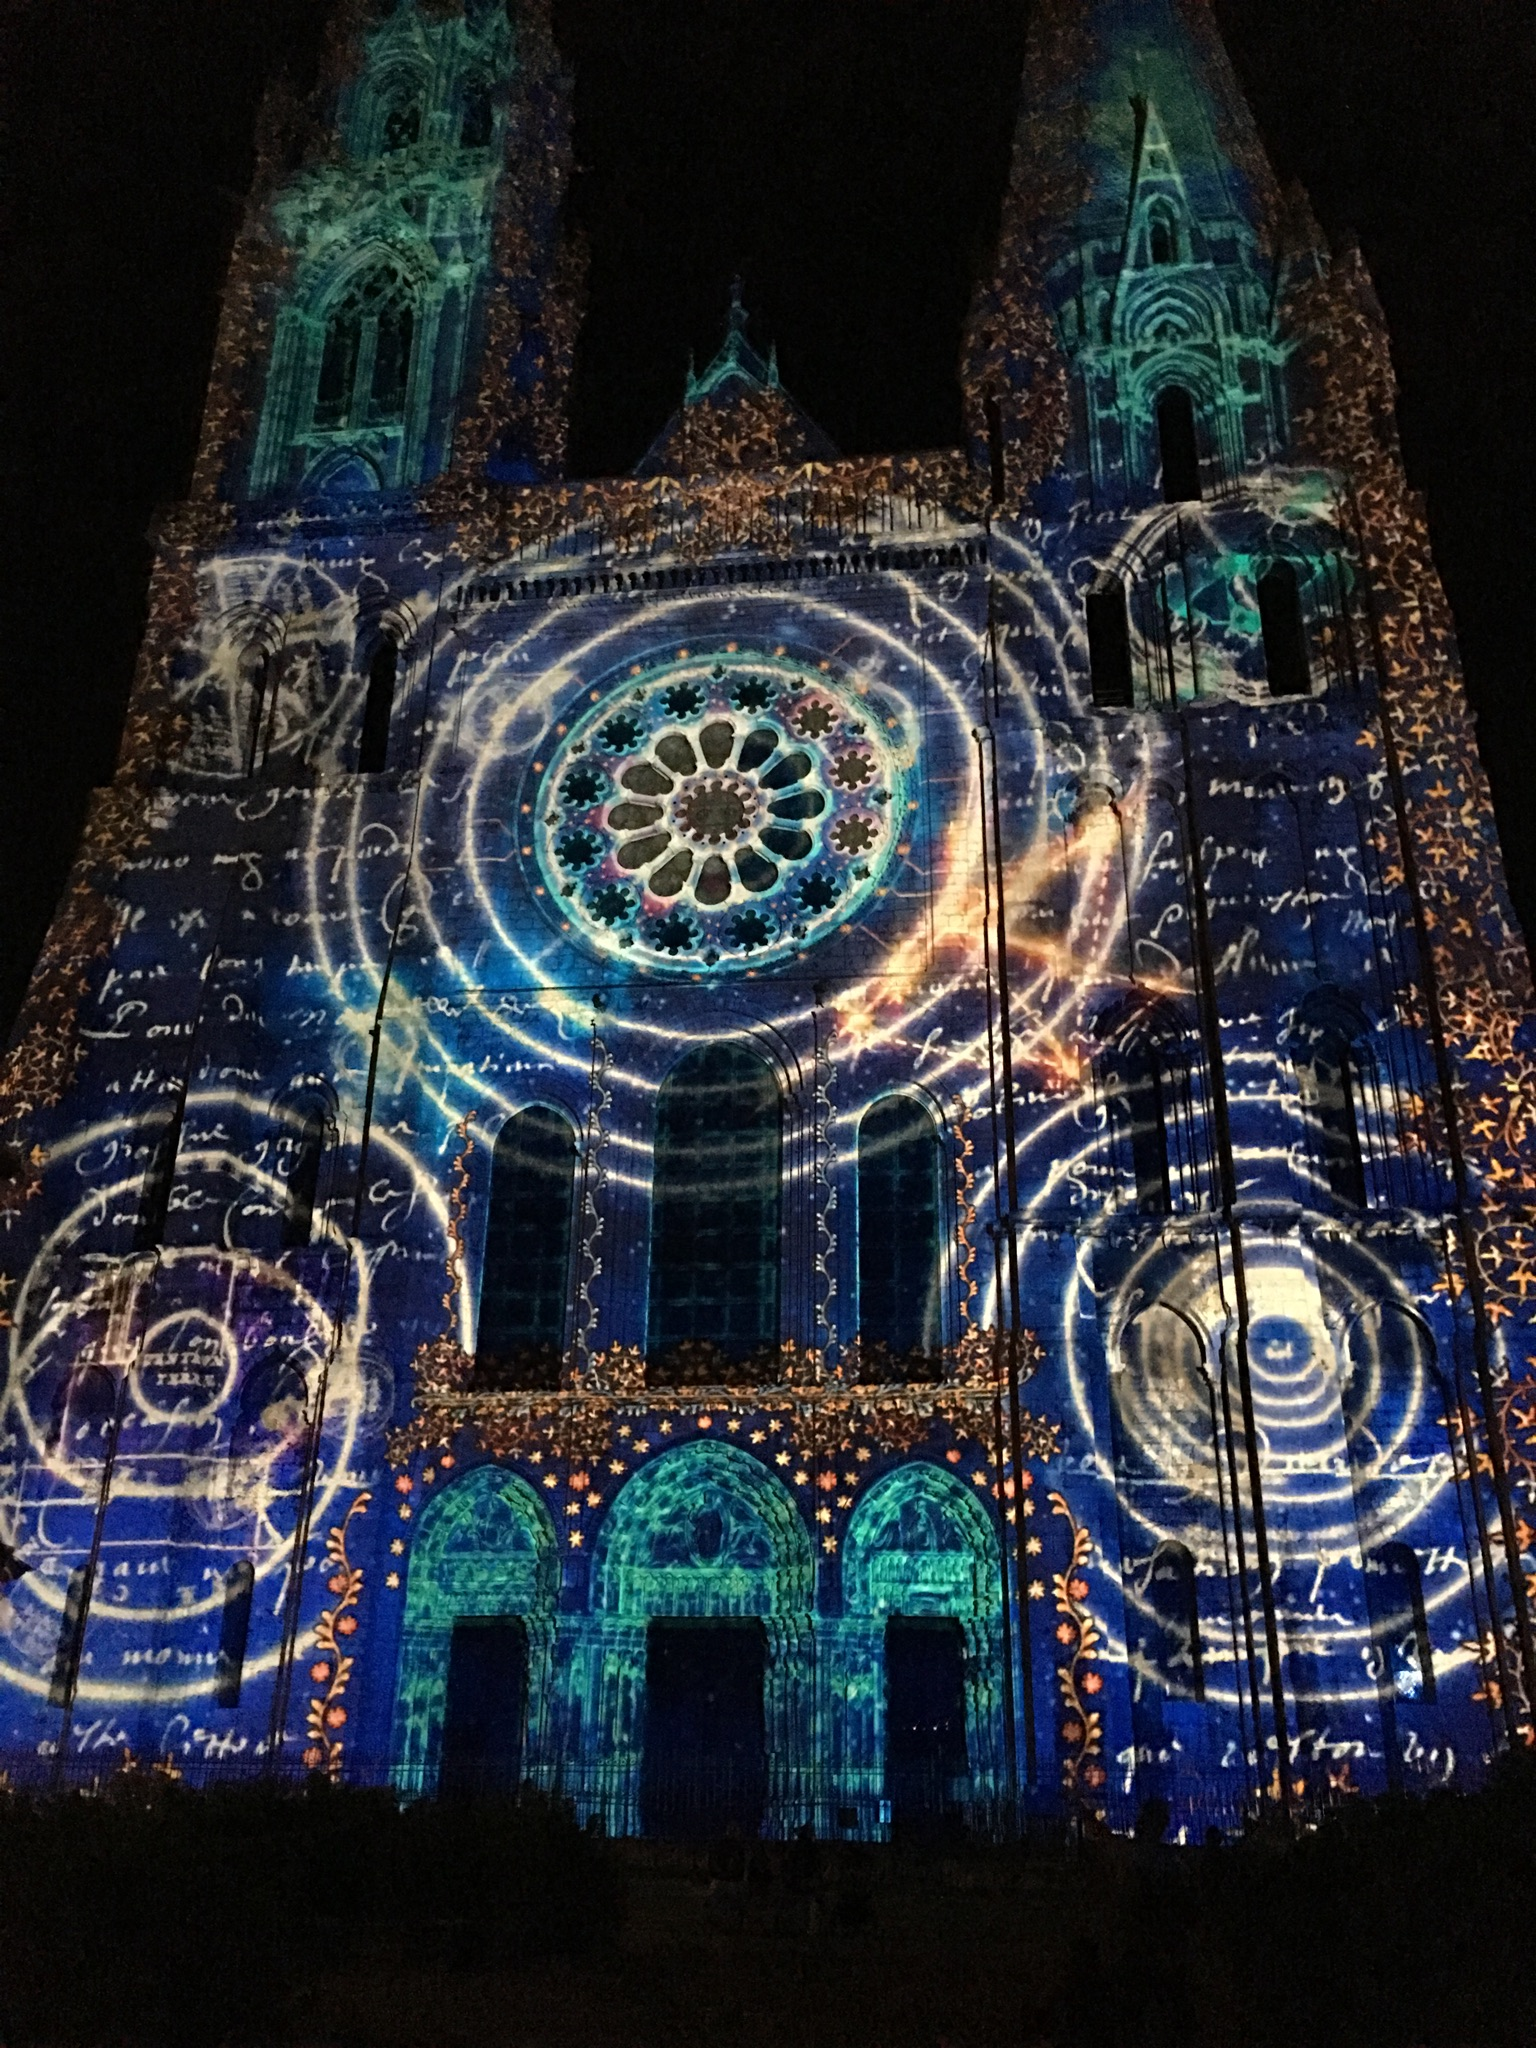 Illuminations on the front of Chartres Cathedral